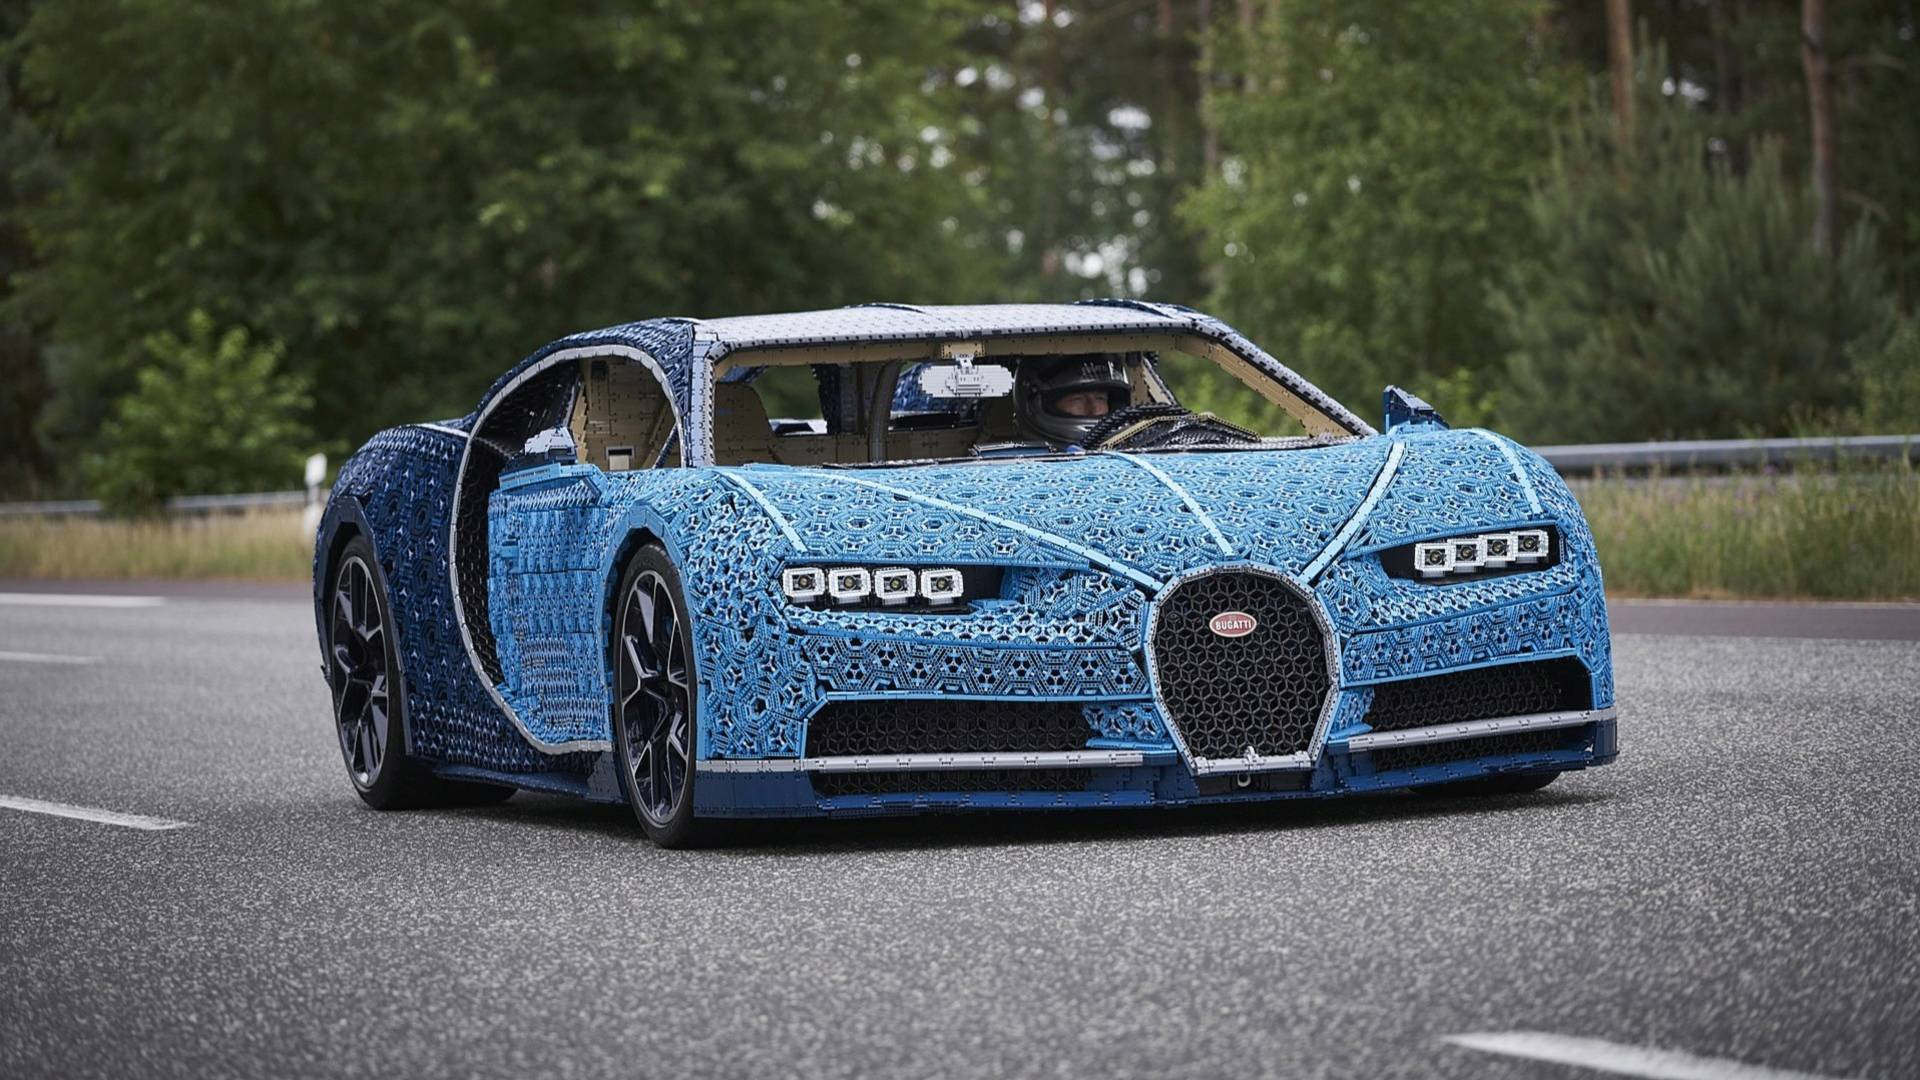 This Insane Life Size Lego Technic Bugatti Chiron Is Drivable